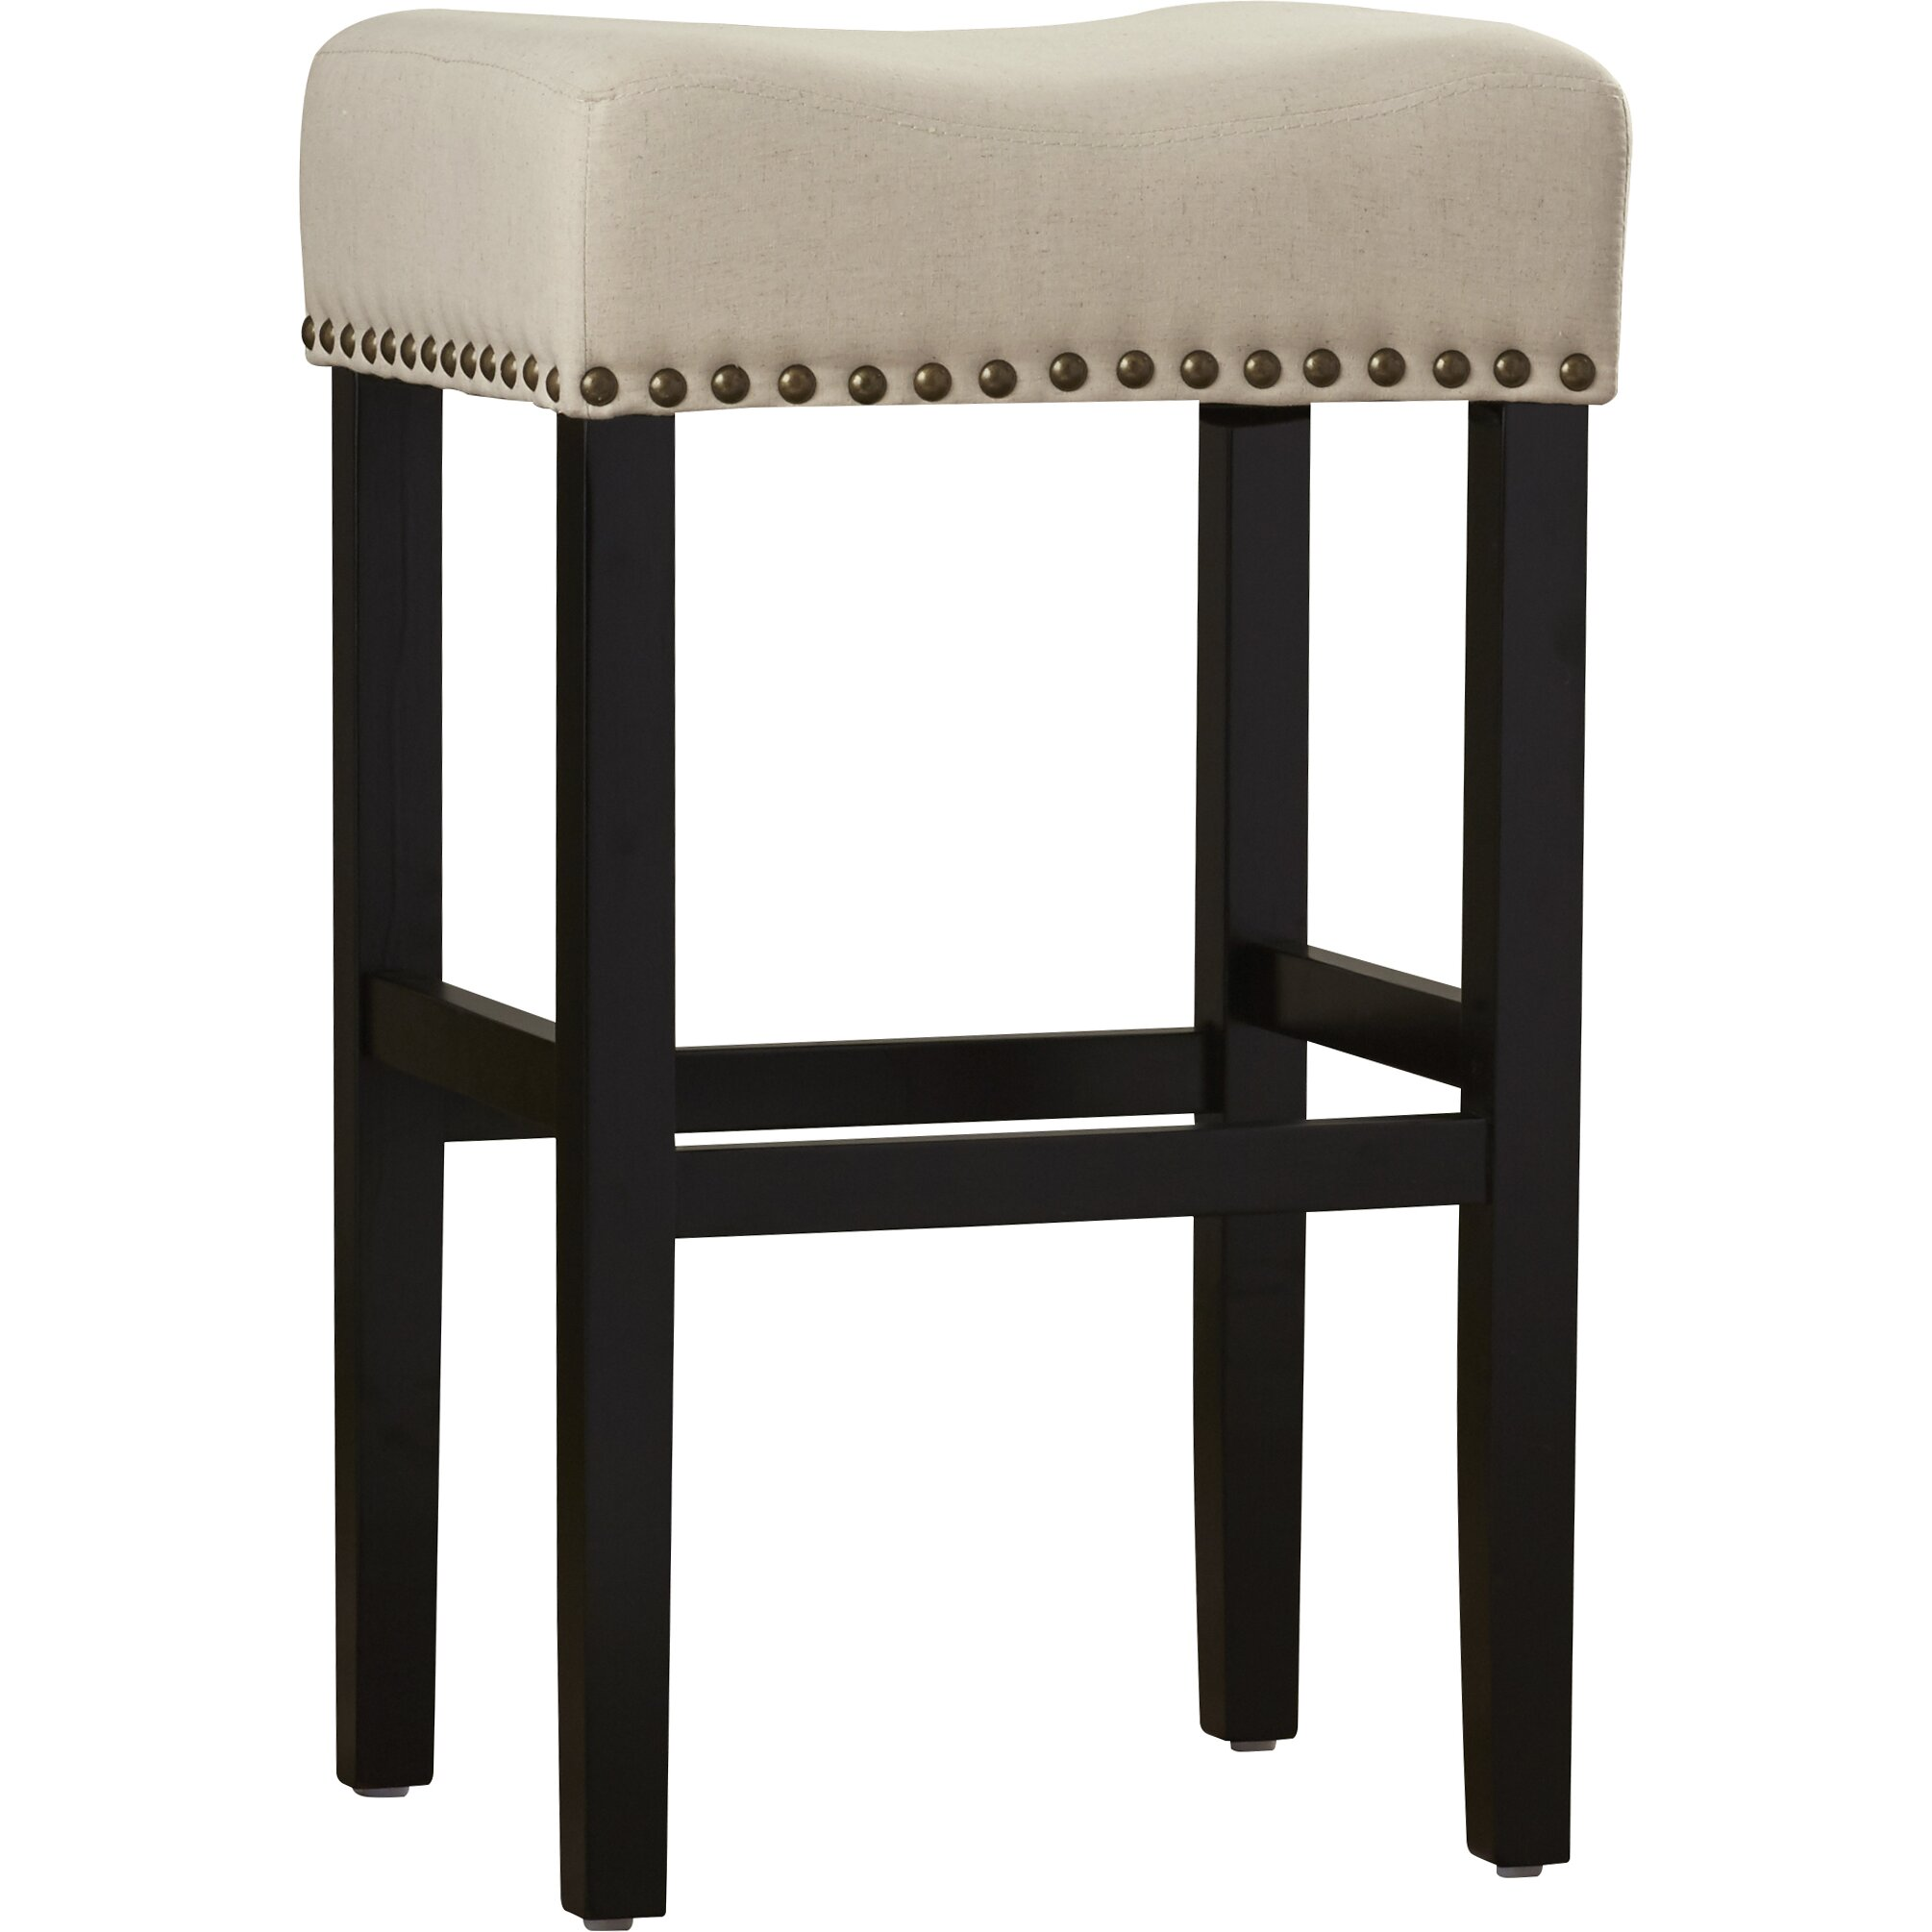 Alcott Hill Shaws 30 31 Quot Bar Stool Amp Reviews Wayfair Ca